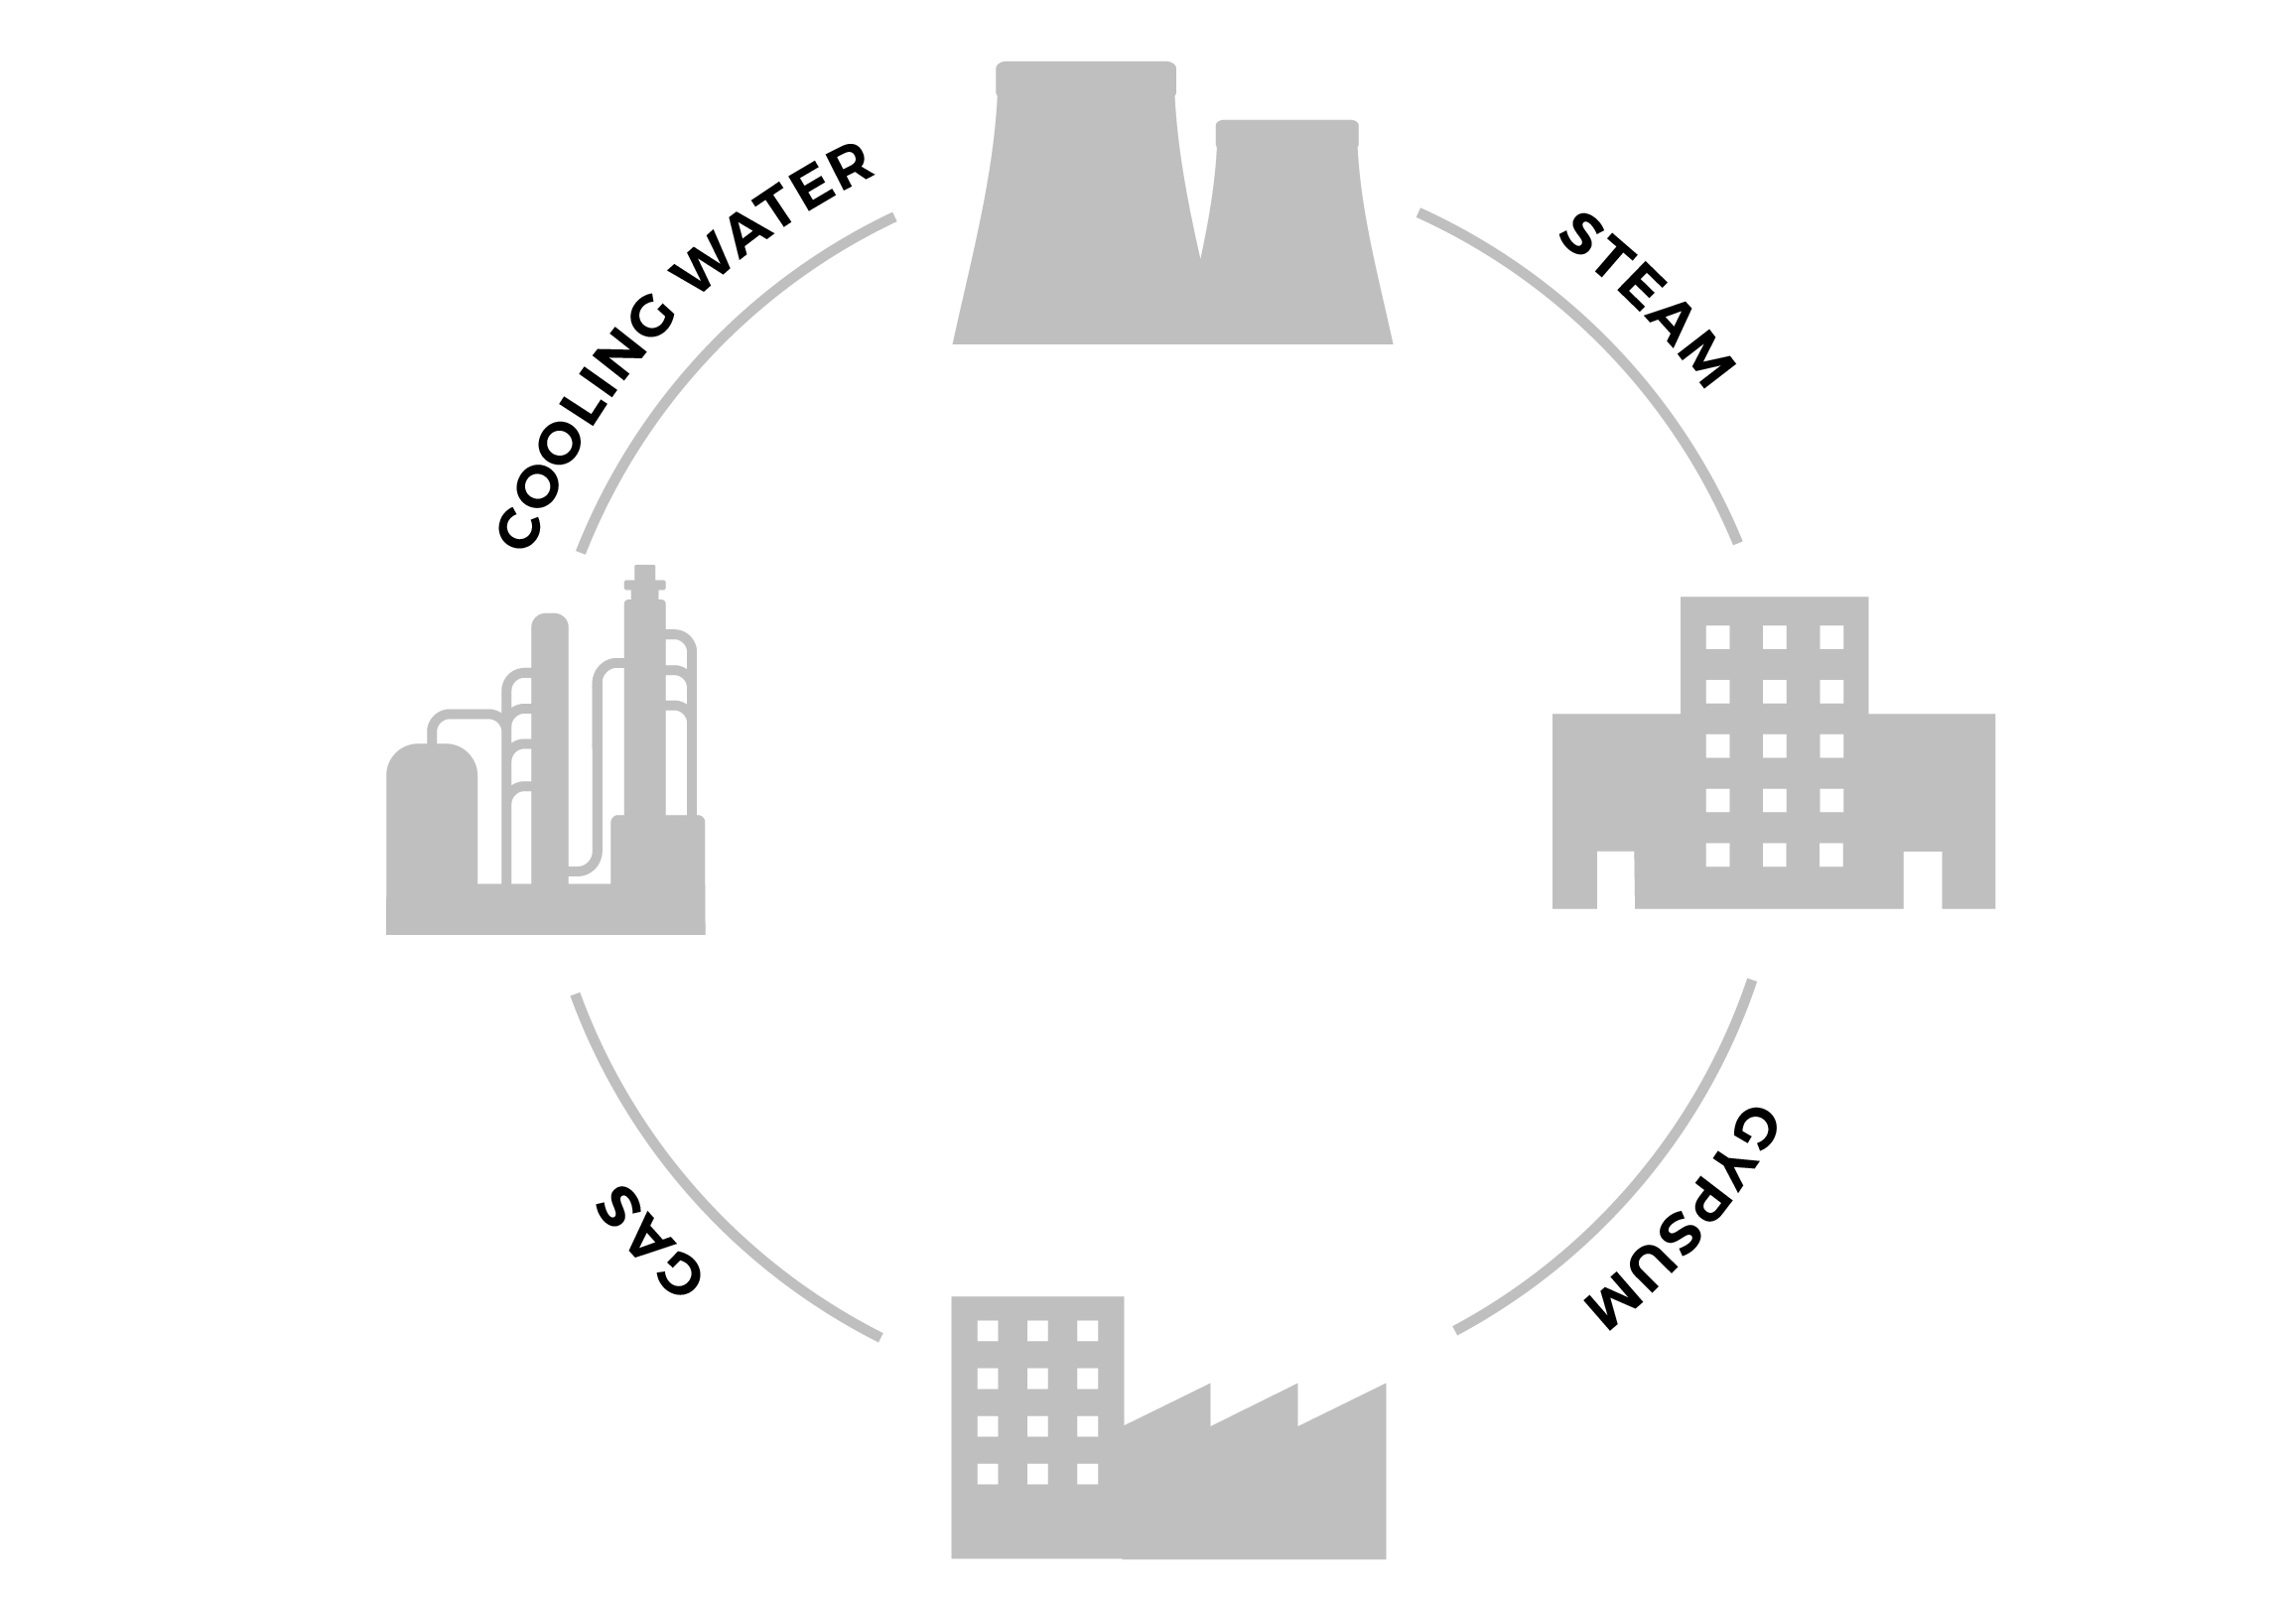 The city of Kalundborg in Denmark is one cool example of how a circular economy can work